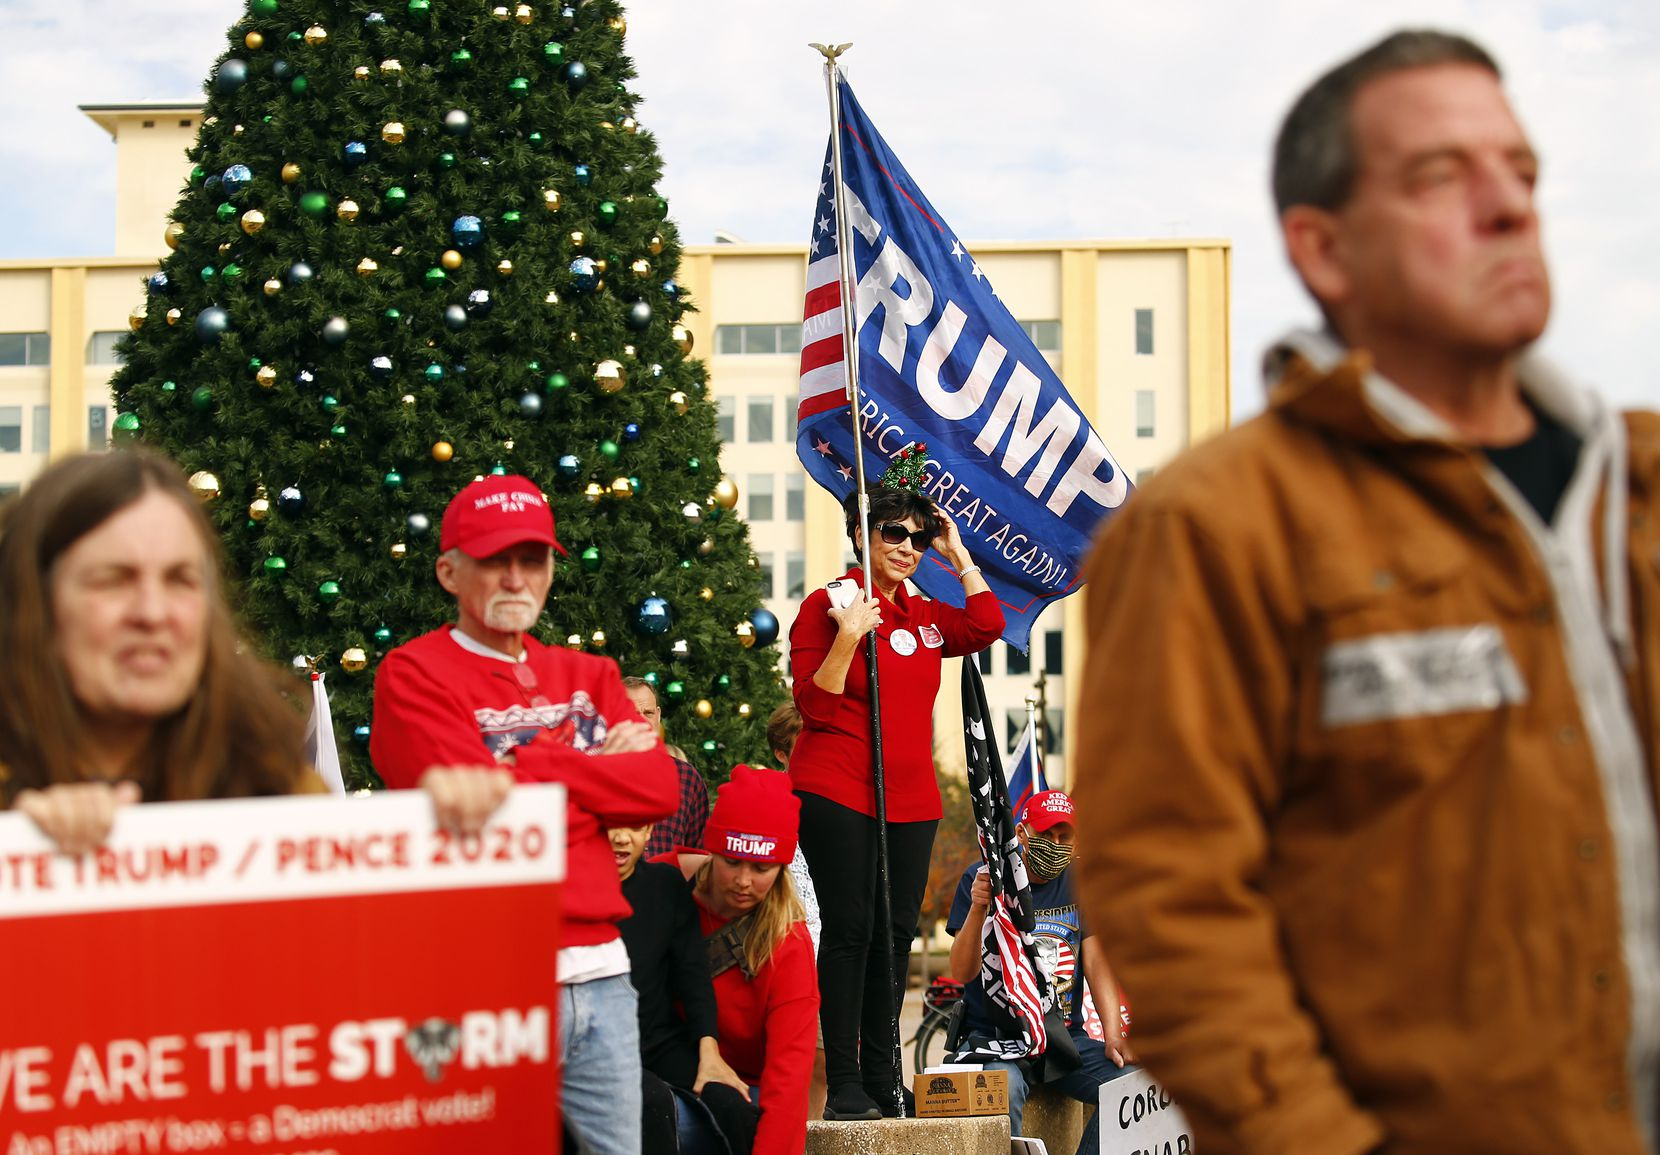 Demonstrators at the Texas GOP's rally at Dallas City Hall on Saturday brought concerns about a wide array of issues Saturday, perhaps chief among them the outcome of the Nov. 3 presidential election.